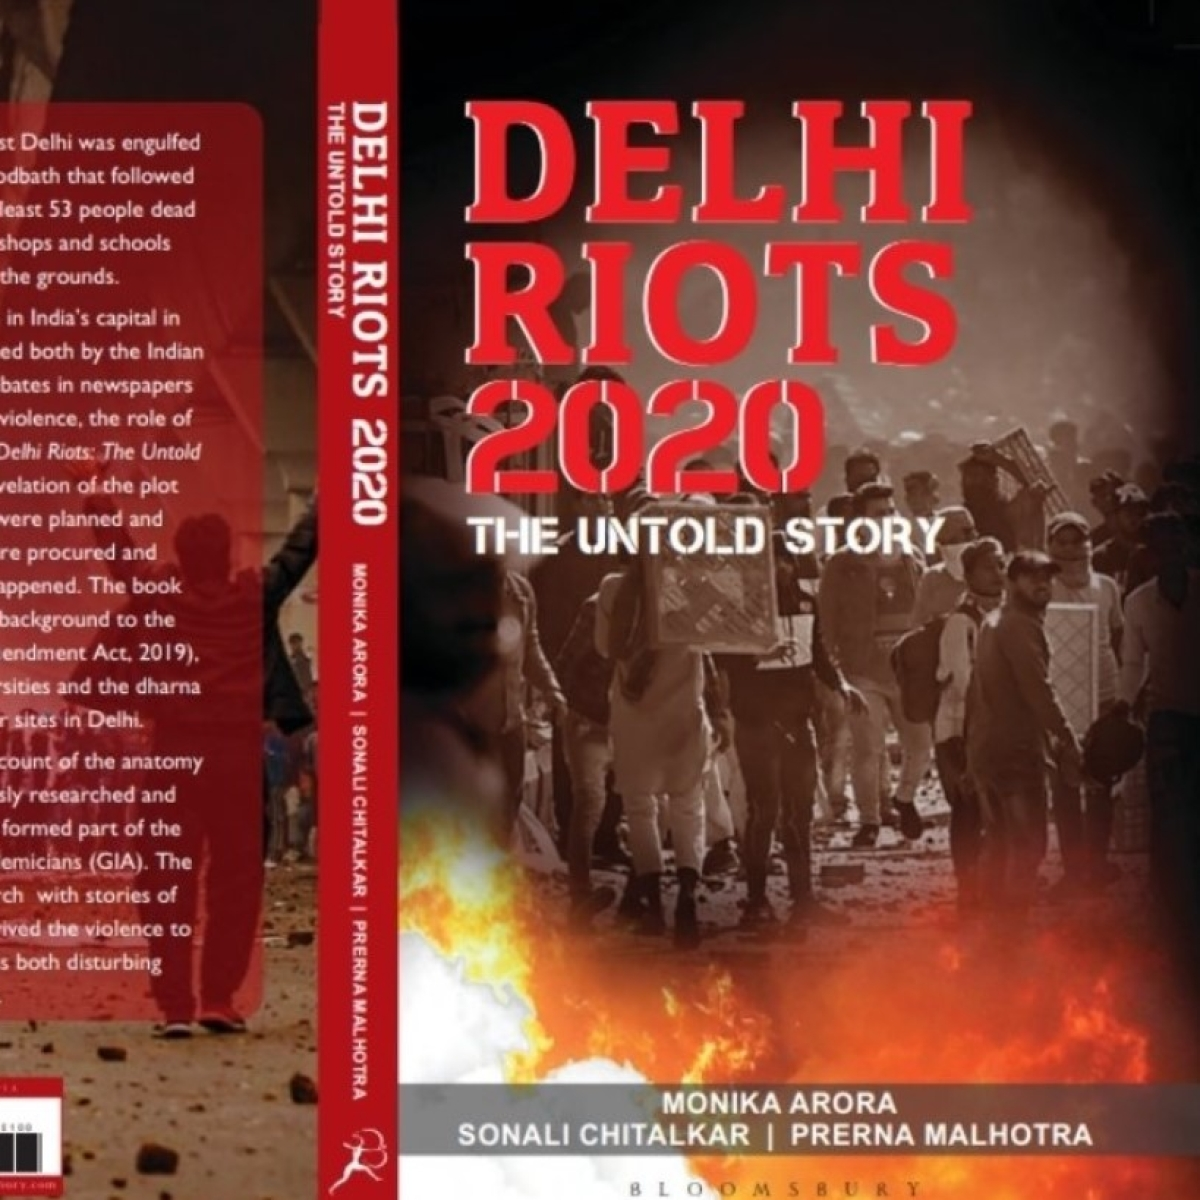 Delhi Riots 2020 Book Review: One side of the coin - and it's not pretty